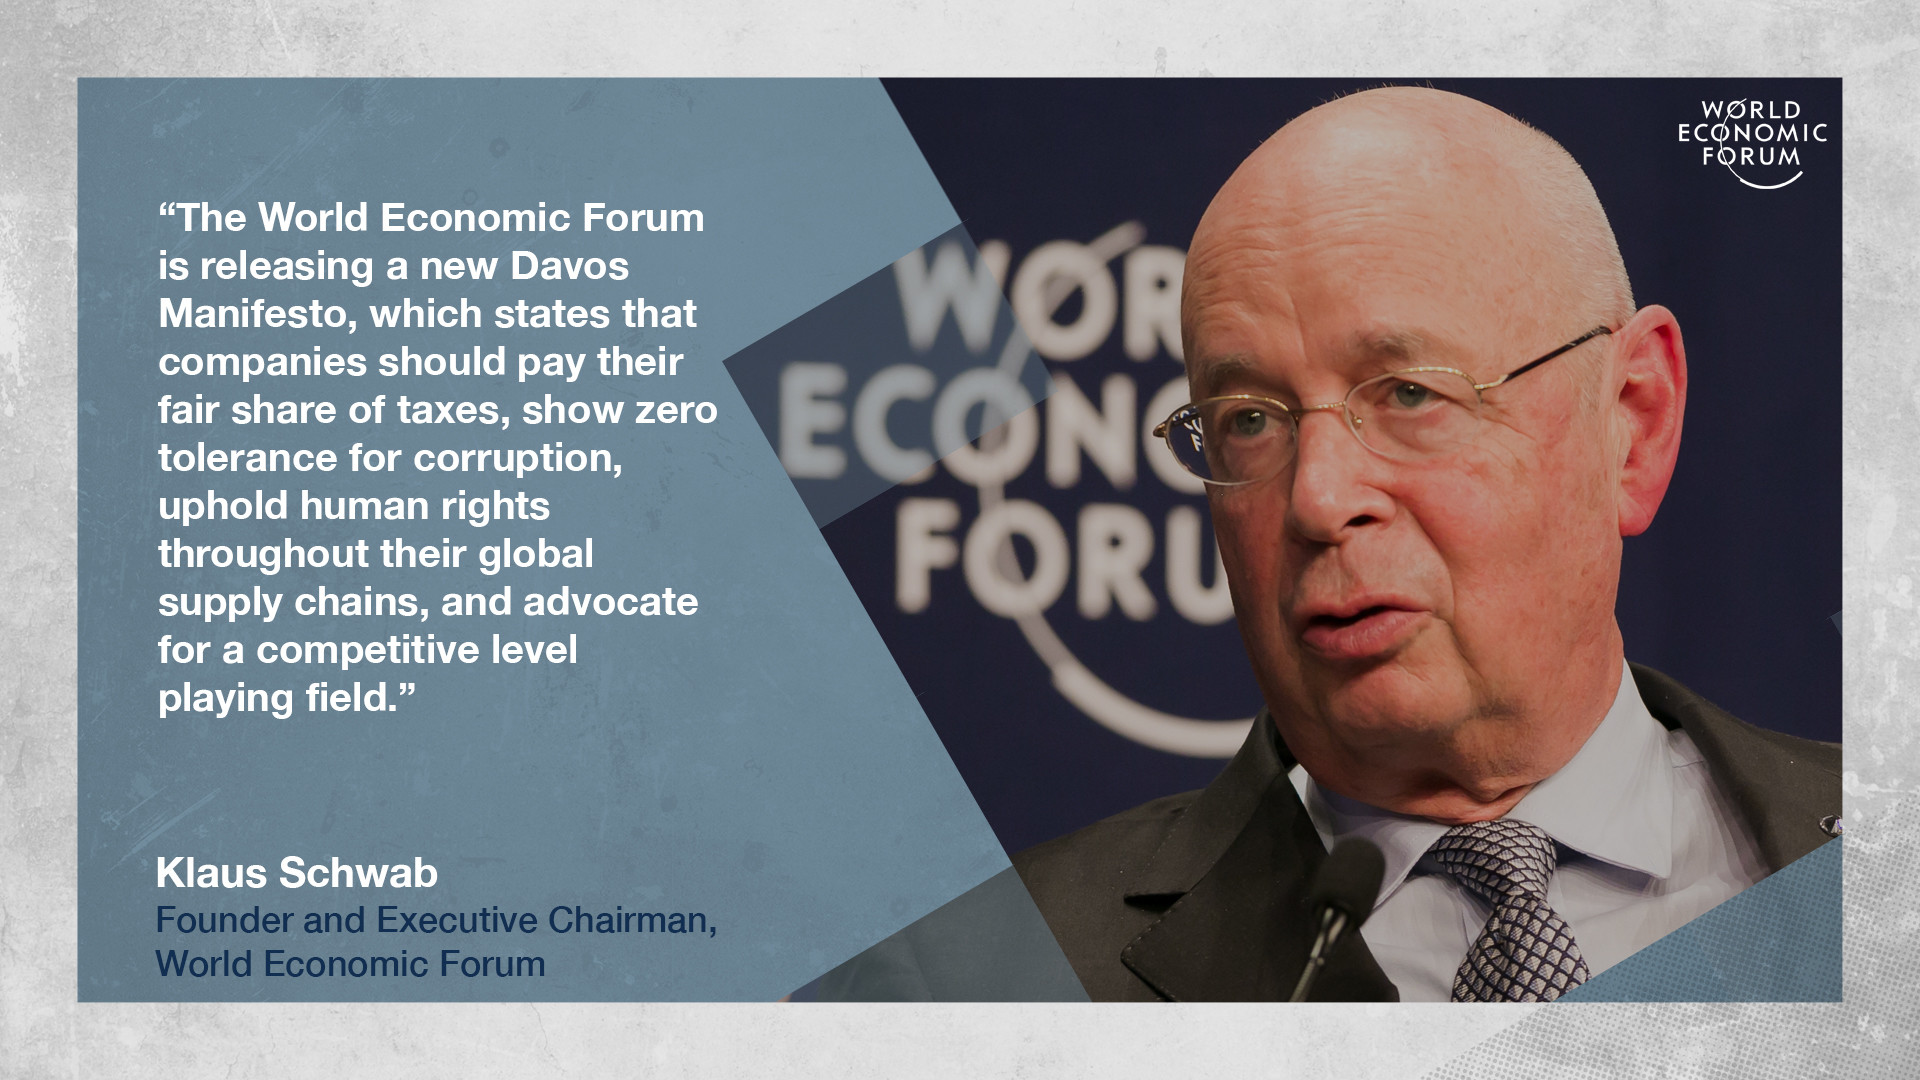 Klaus Schwab on the new Davos Manifesto